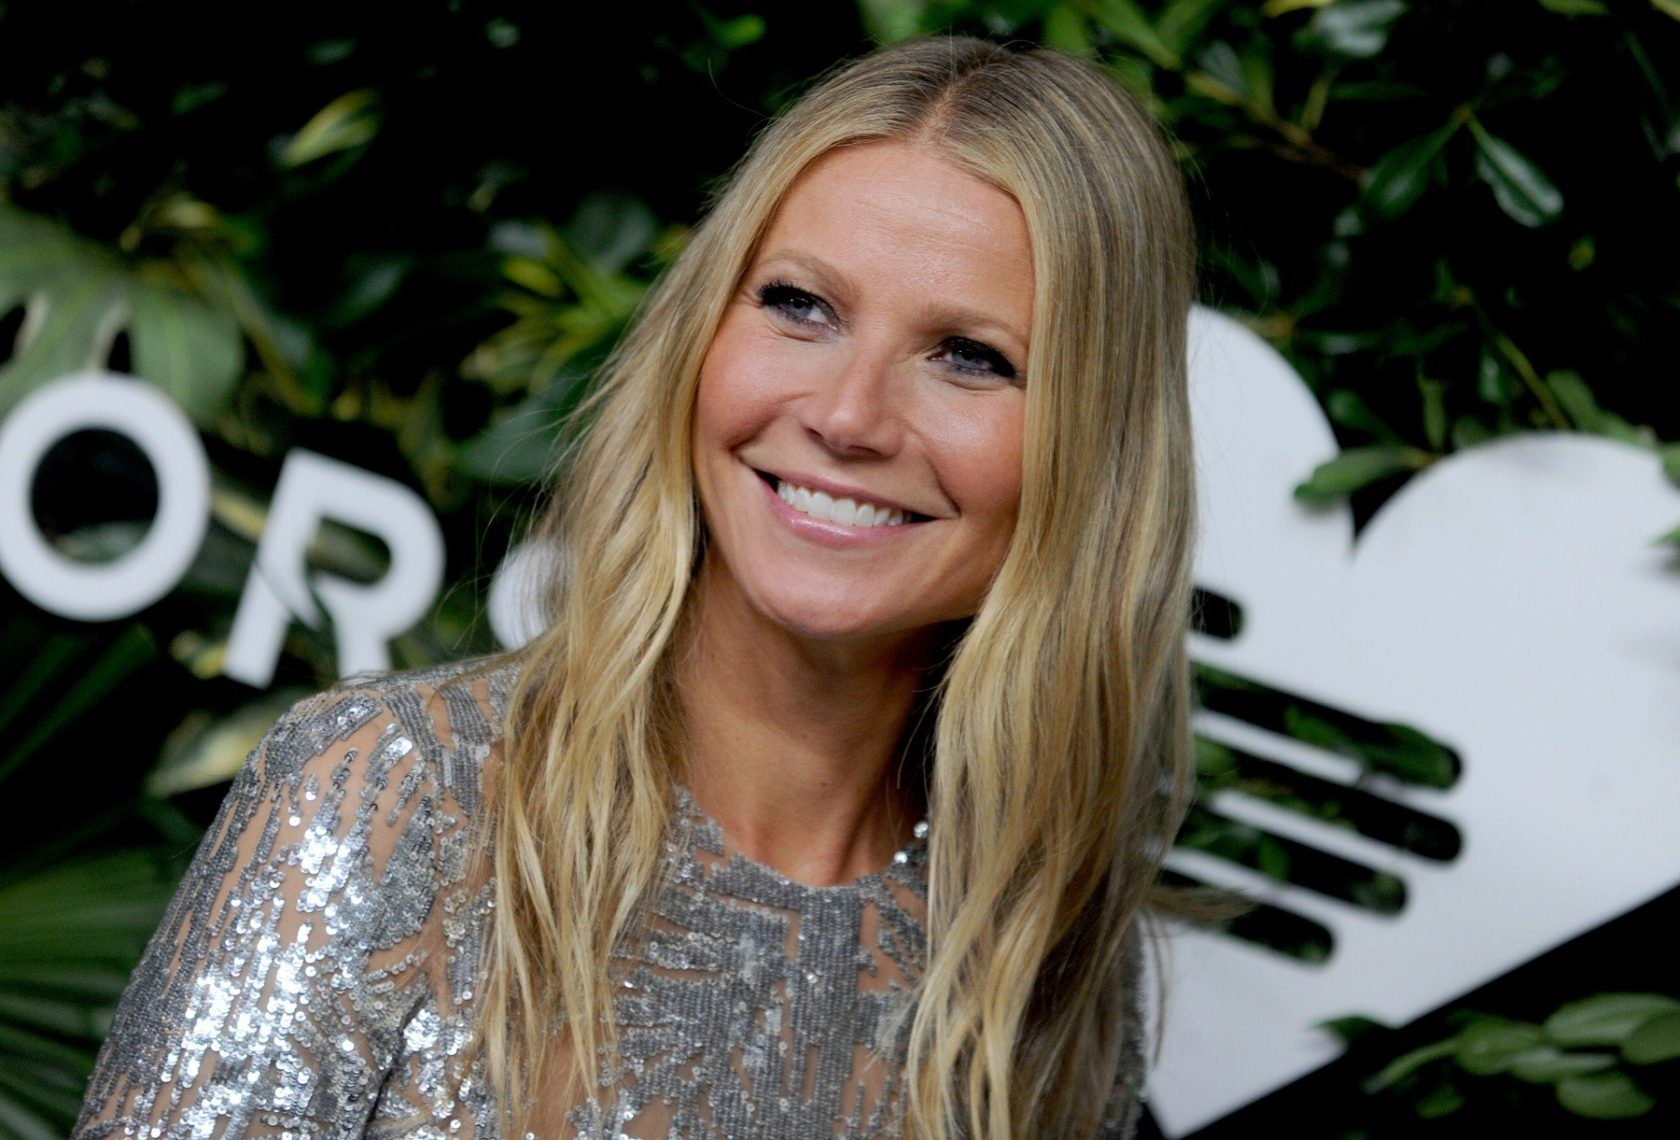 Gwyneth Paltrow attending the 11th Annual God's Love We Deliver Golden Heart Awards at Spring Studios on October 16, 2017 in New York City, NY, USA., Image: 353152647, License: Rights-managed, Restrictions: , Model Release: no, Credit line: Profimedia, Abaca